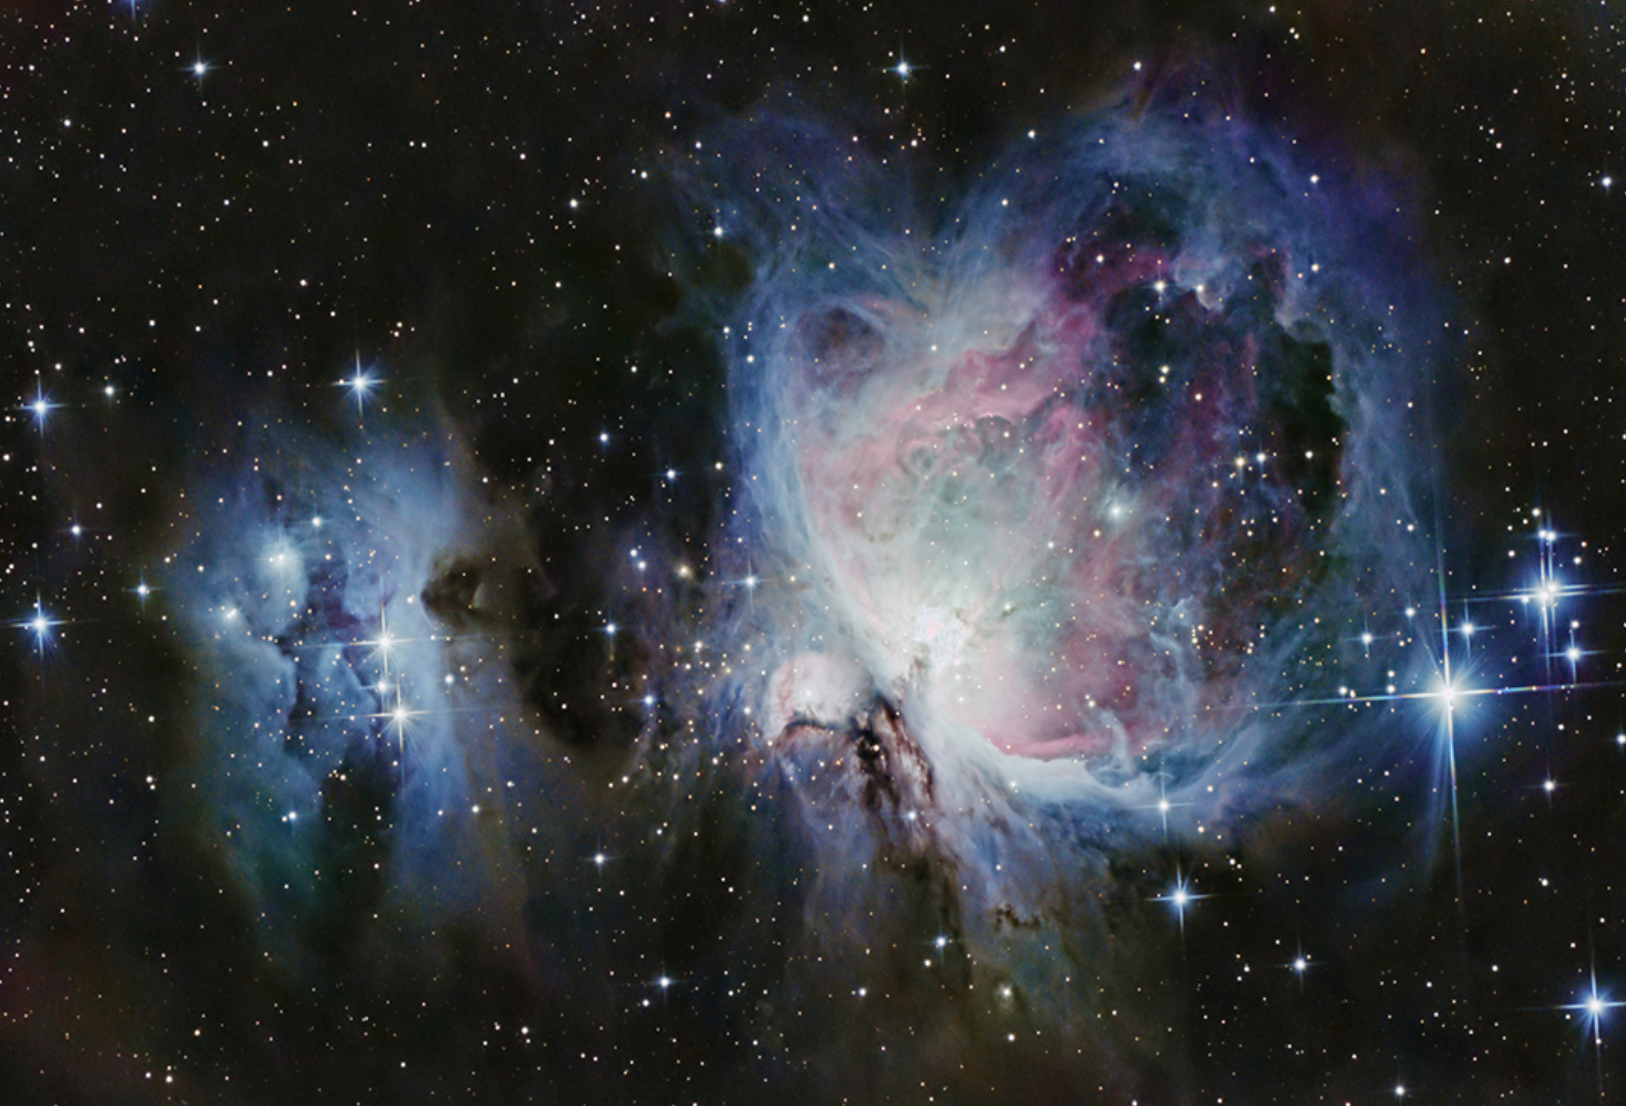 Orion and Running Man Nebulas, photo taken by Ethan Catalanello